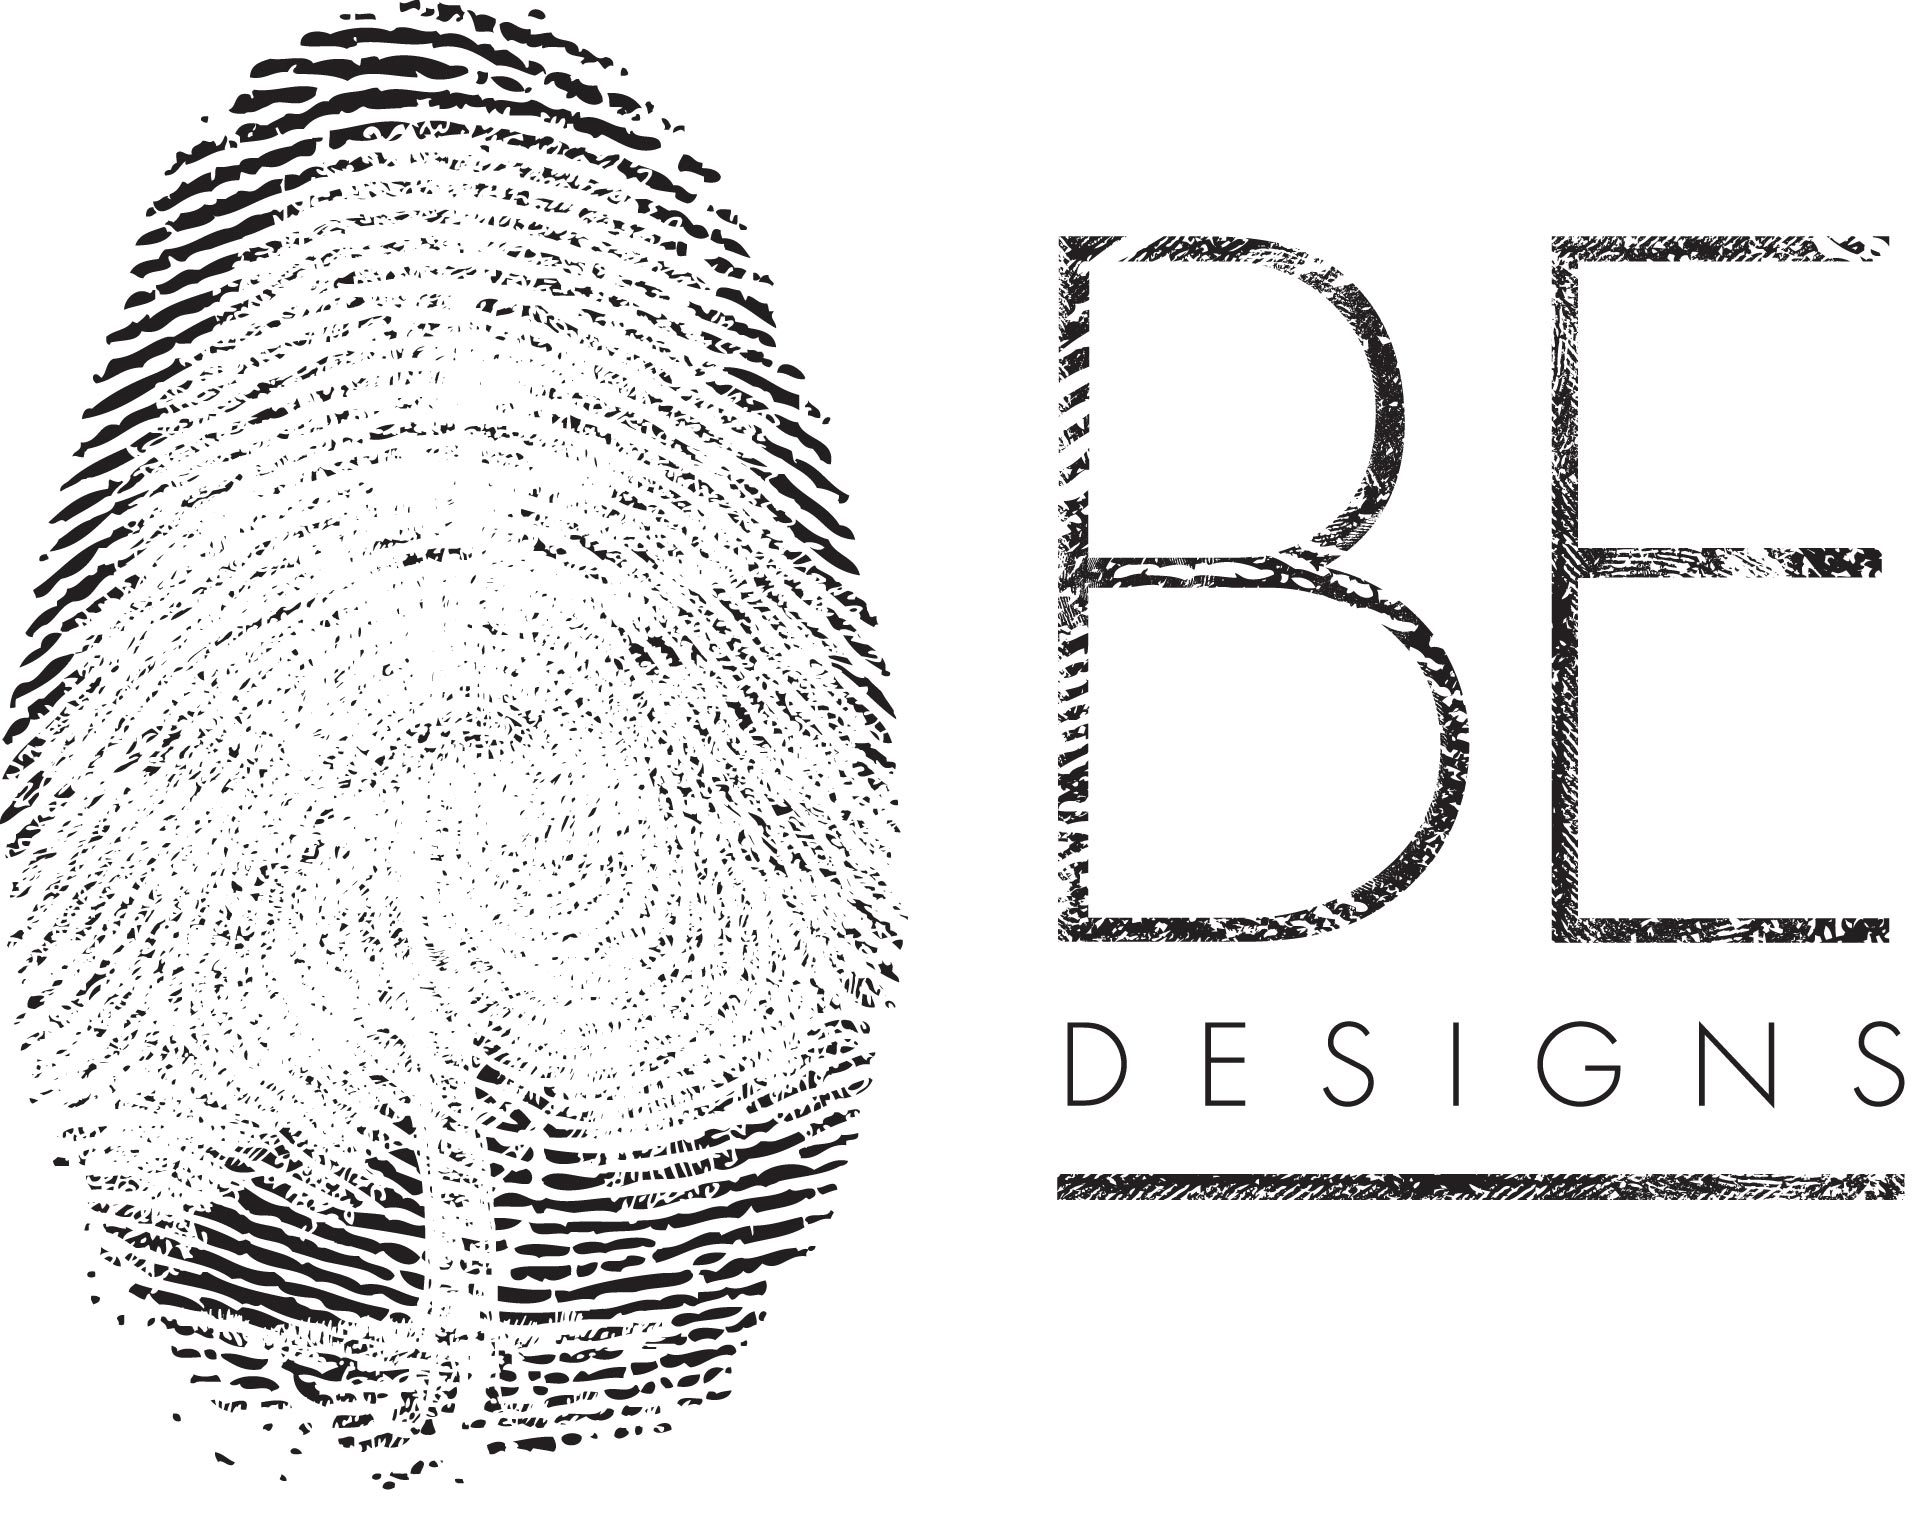 Be Designs   We are building an online community to help you make small changes in your every day to achieve a more sustainable and healthier lifestyle. We support and educate. We bring like-minded people together and we encourage you to join our tribe of sustainability solution seekers.  Take small steps, act locally, be the change.